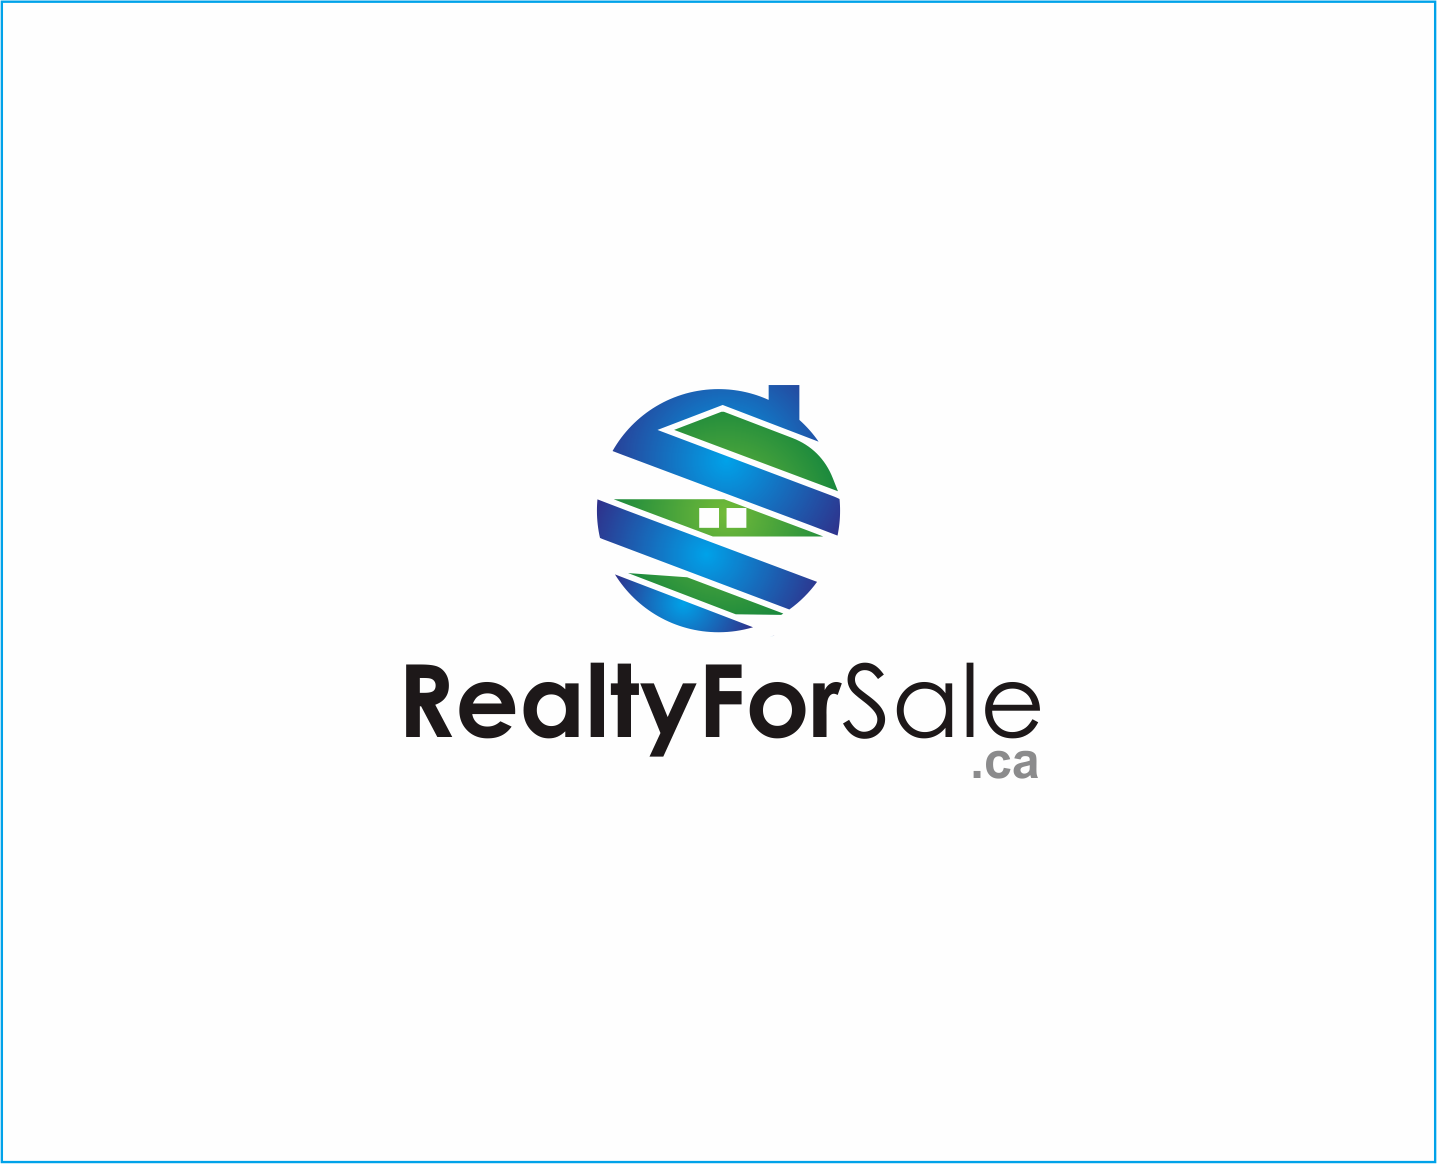 Logo Design by Armada Jamaluddin - Entry No. 90 in the Logo Design Contest Inspiring Logo Design for RealtyForSale.ca.